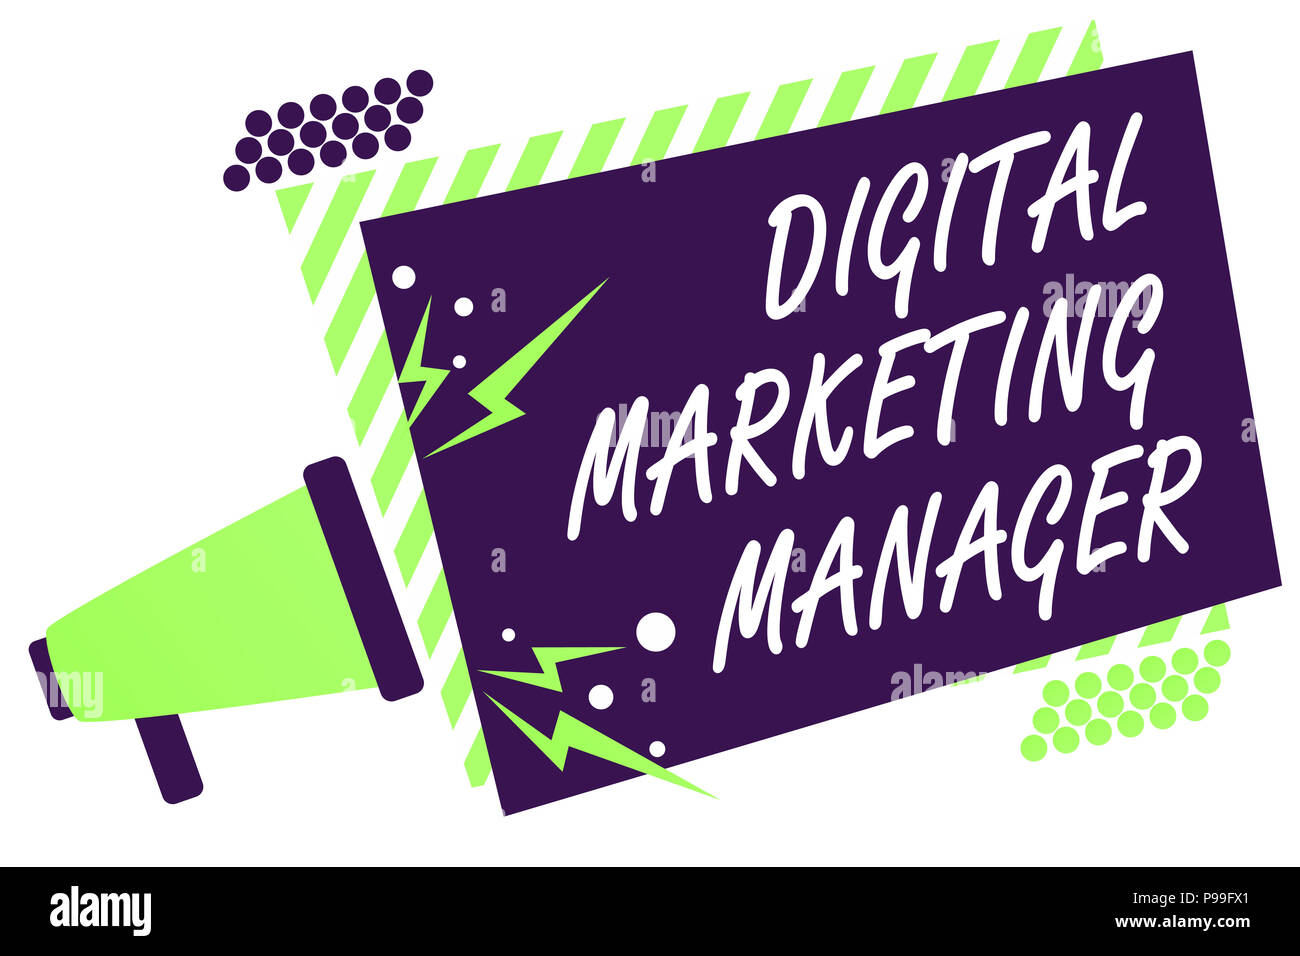 Text sign showing Digital Marketing Manager. Conceptual photo optimized for posting in online boards or careers Megaphone loudspeaker green striped fr - Stock Image